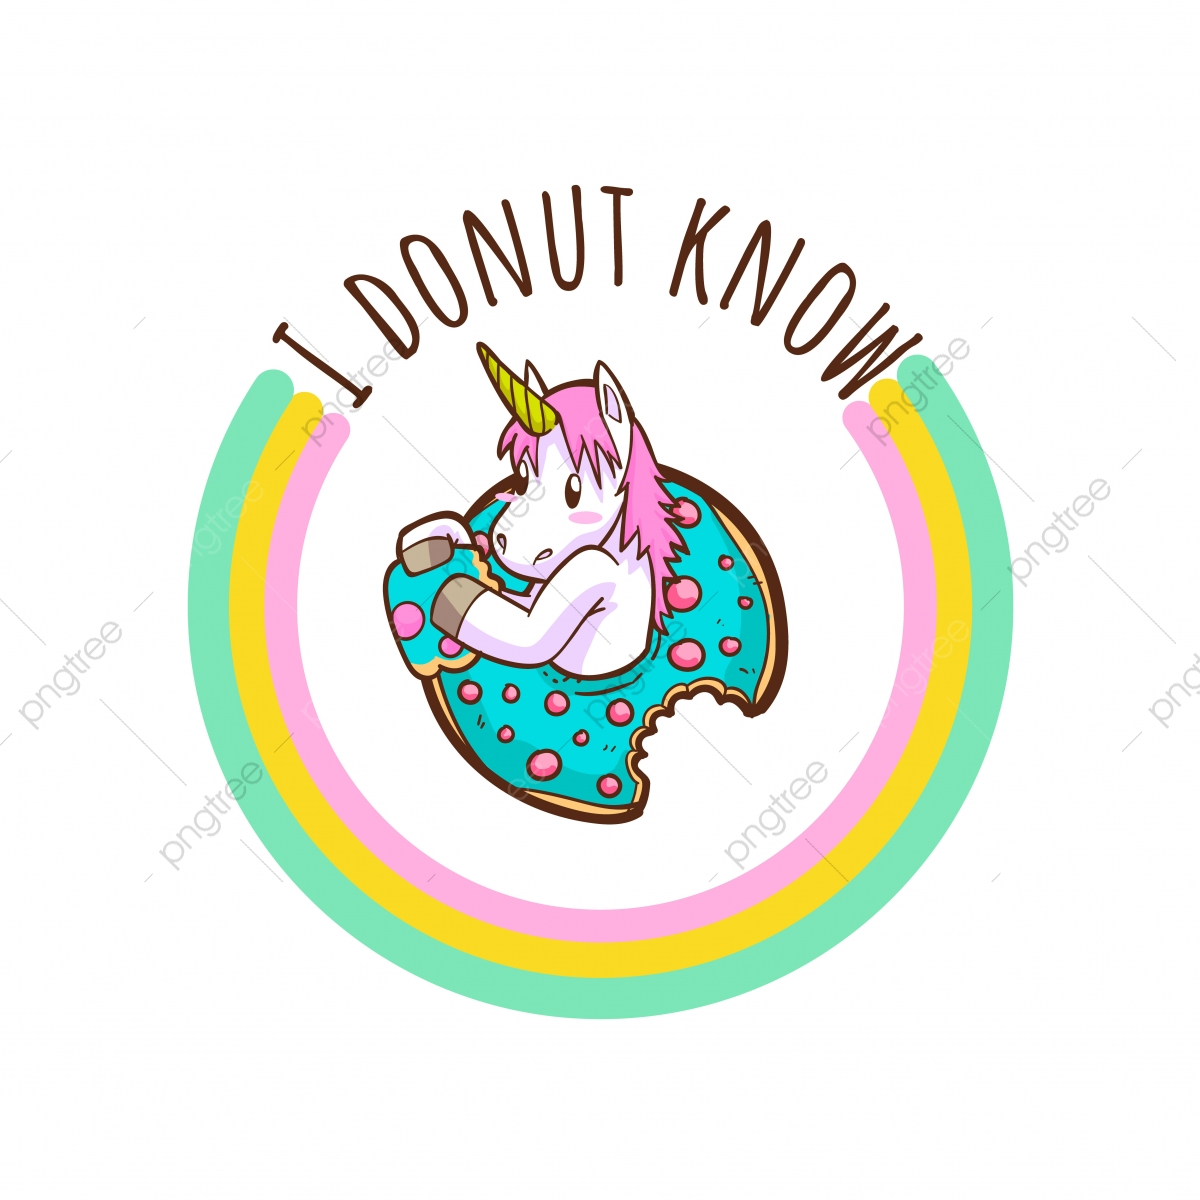 pngtree cute unicorn and donuts quotes png image 4252546